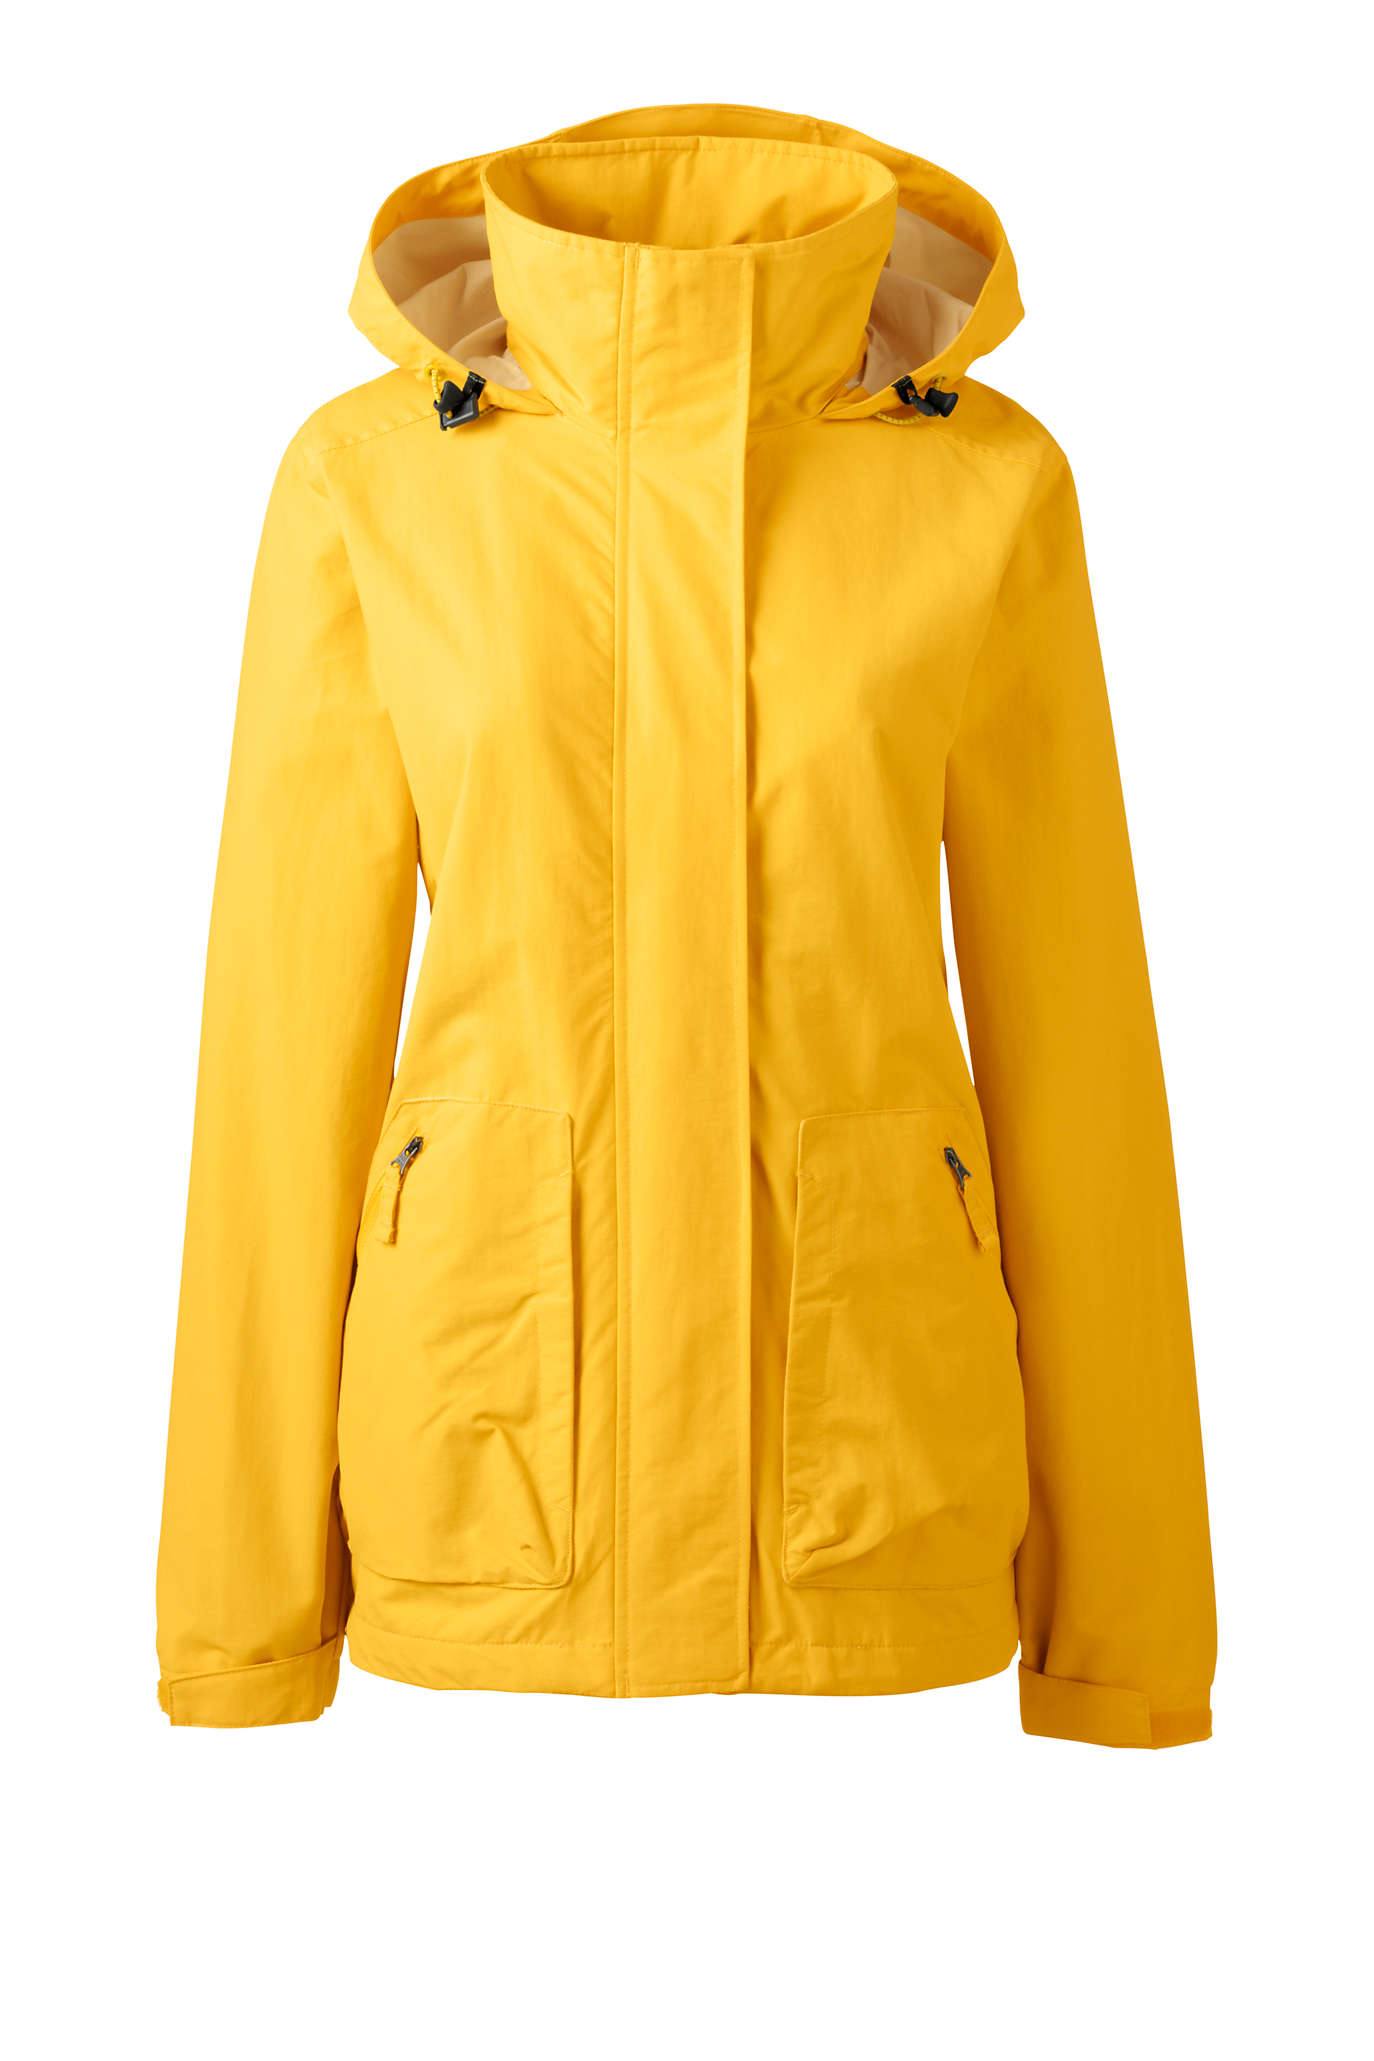 Women's Ultralight Packable Down Coat With Hood